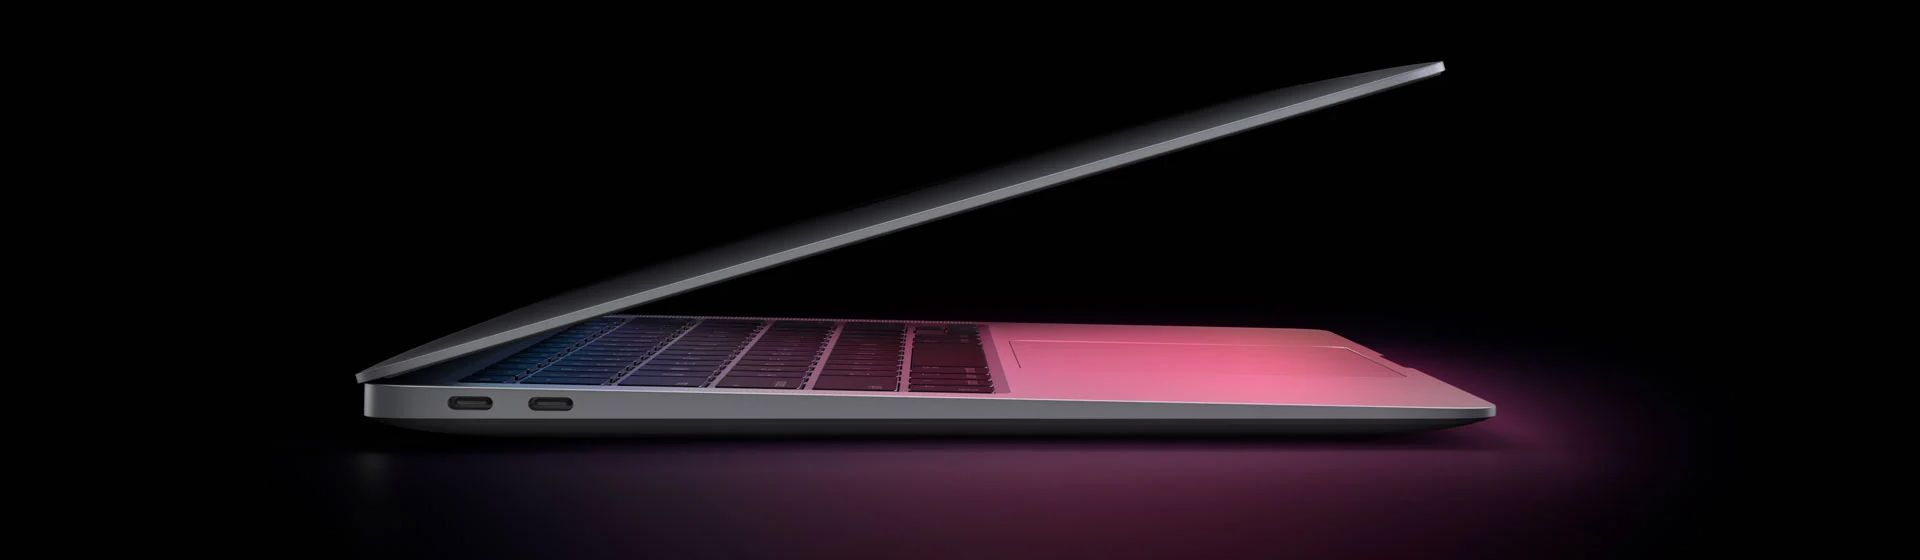 MacBook Air com M1 supera notebook mais poderoso da Apple em testes